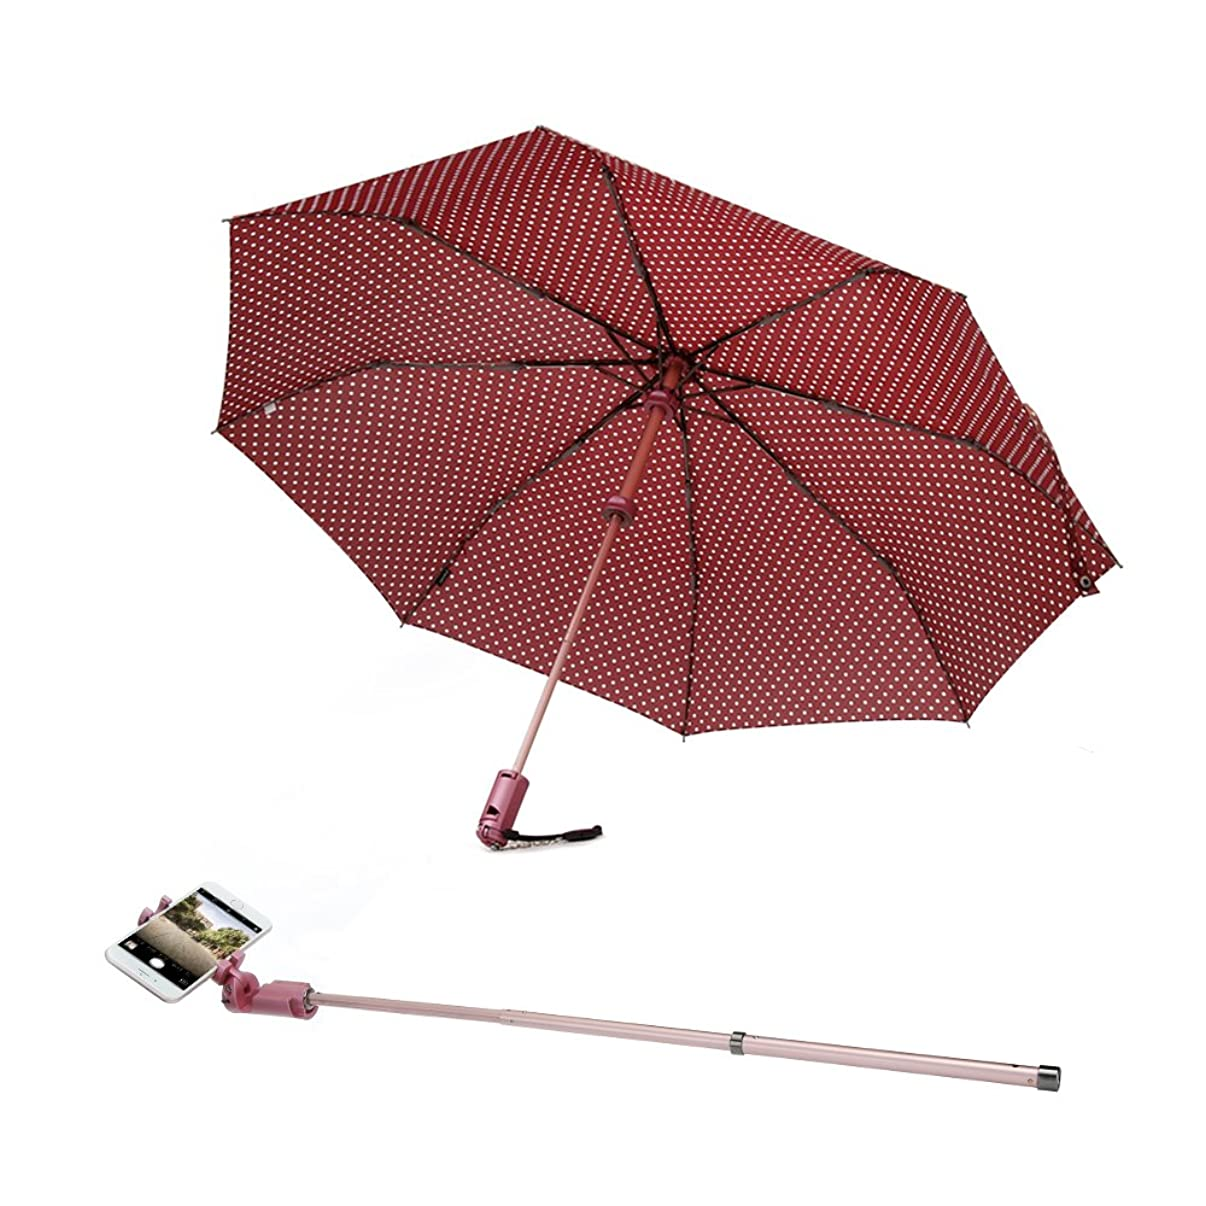 Umbrella with Selfie Stick, Moreslan Compact Folding Windproof Umbrella for Sun&Rain, Detachable Selfie Stick Tripod Monopod with Bluetooth Remote for Men and Women, Dupont Canopy 8 Ribs